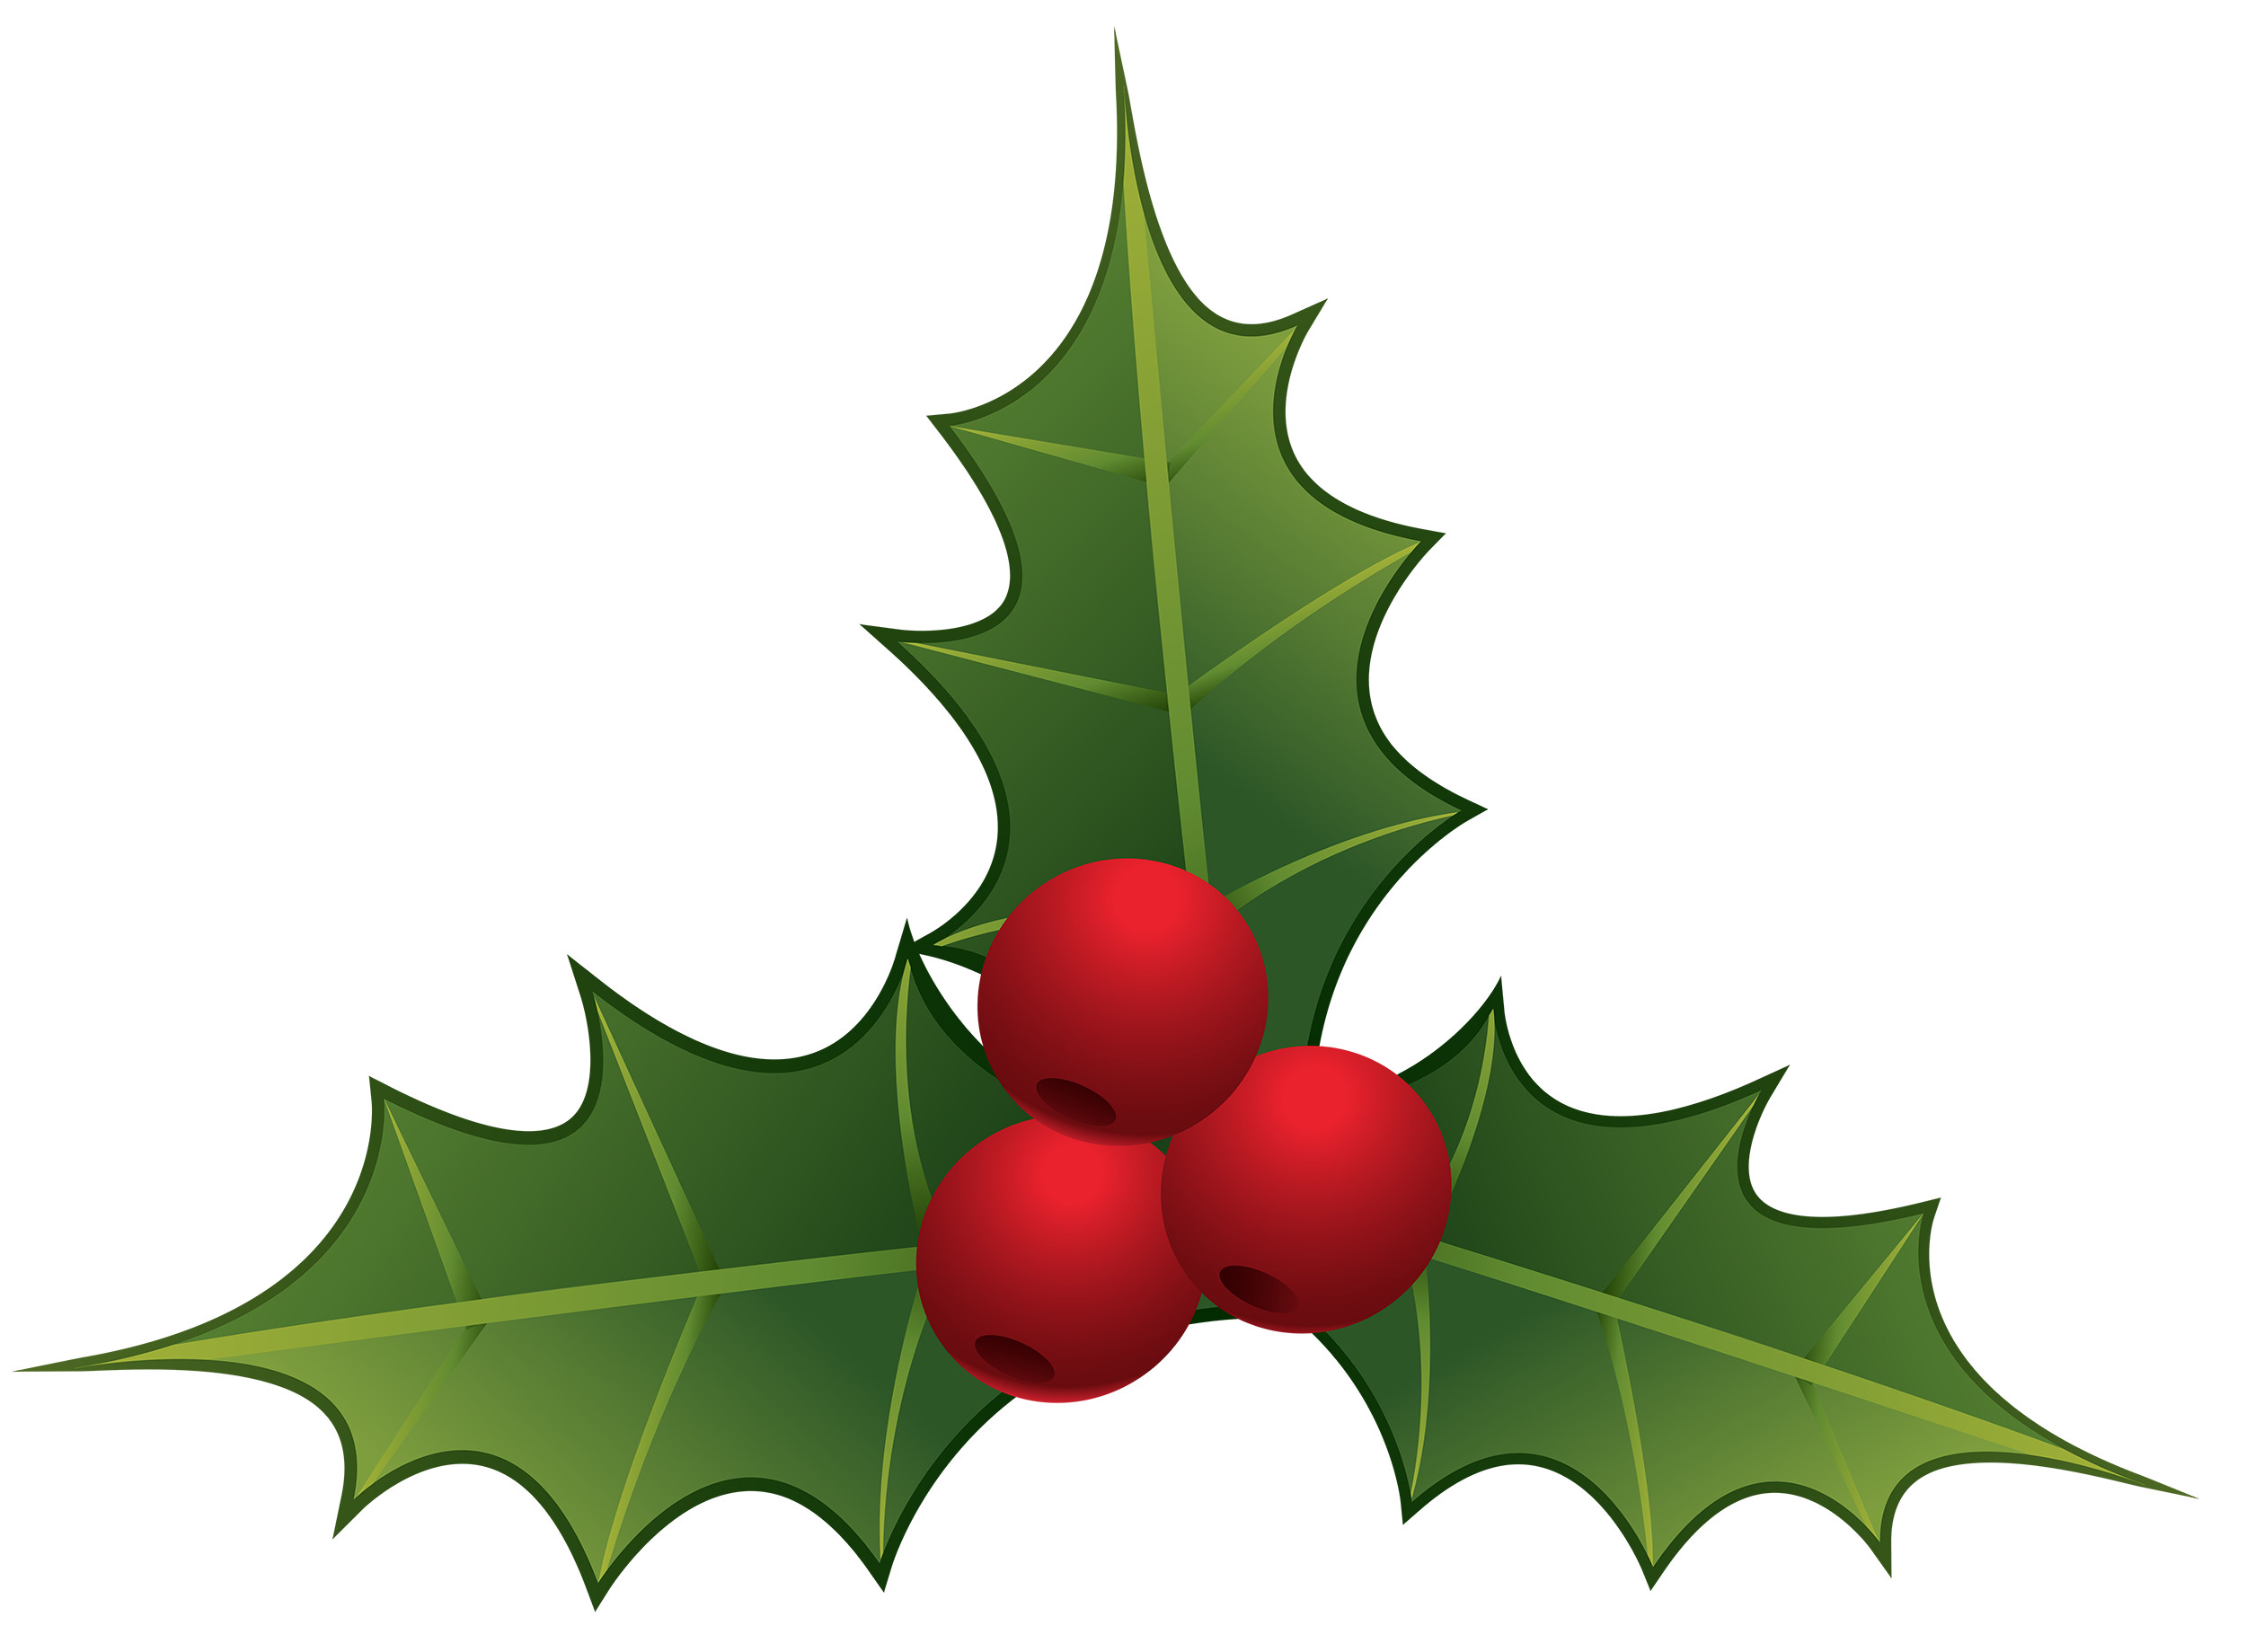 Res: 2500x1839, How To Draw A Mistletoe Cliparts - #22129 - Free Clip Art Images .